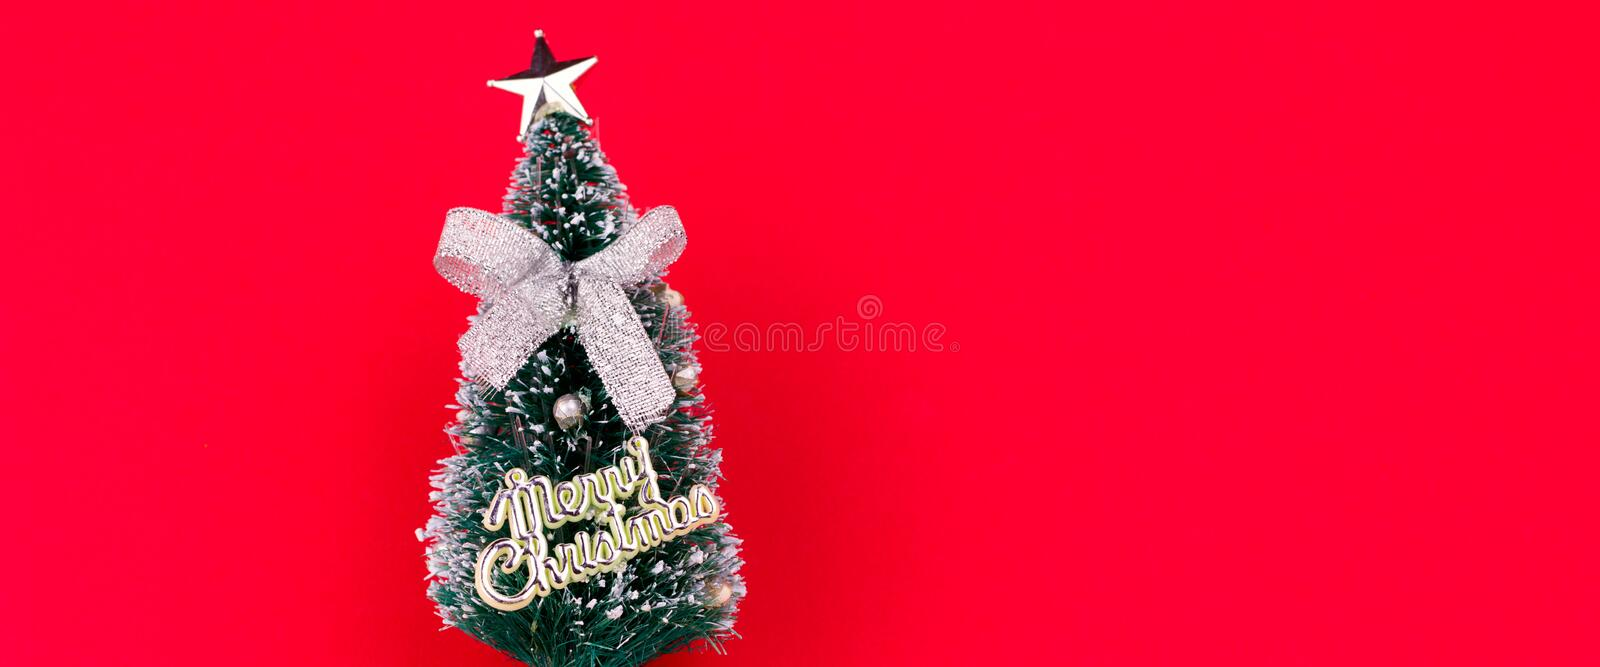 decorative christmas tree red background copy space banner royalty free stock images